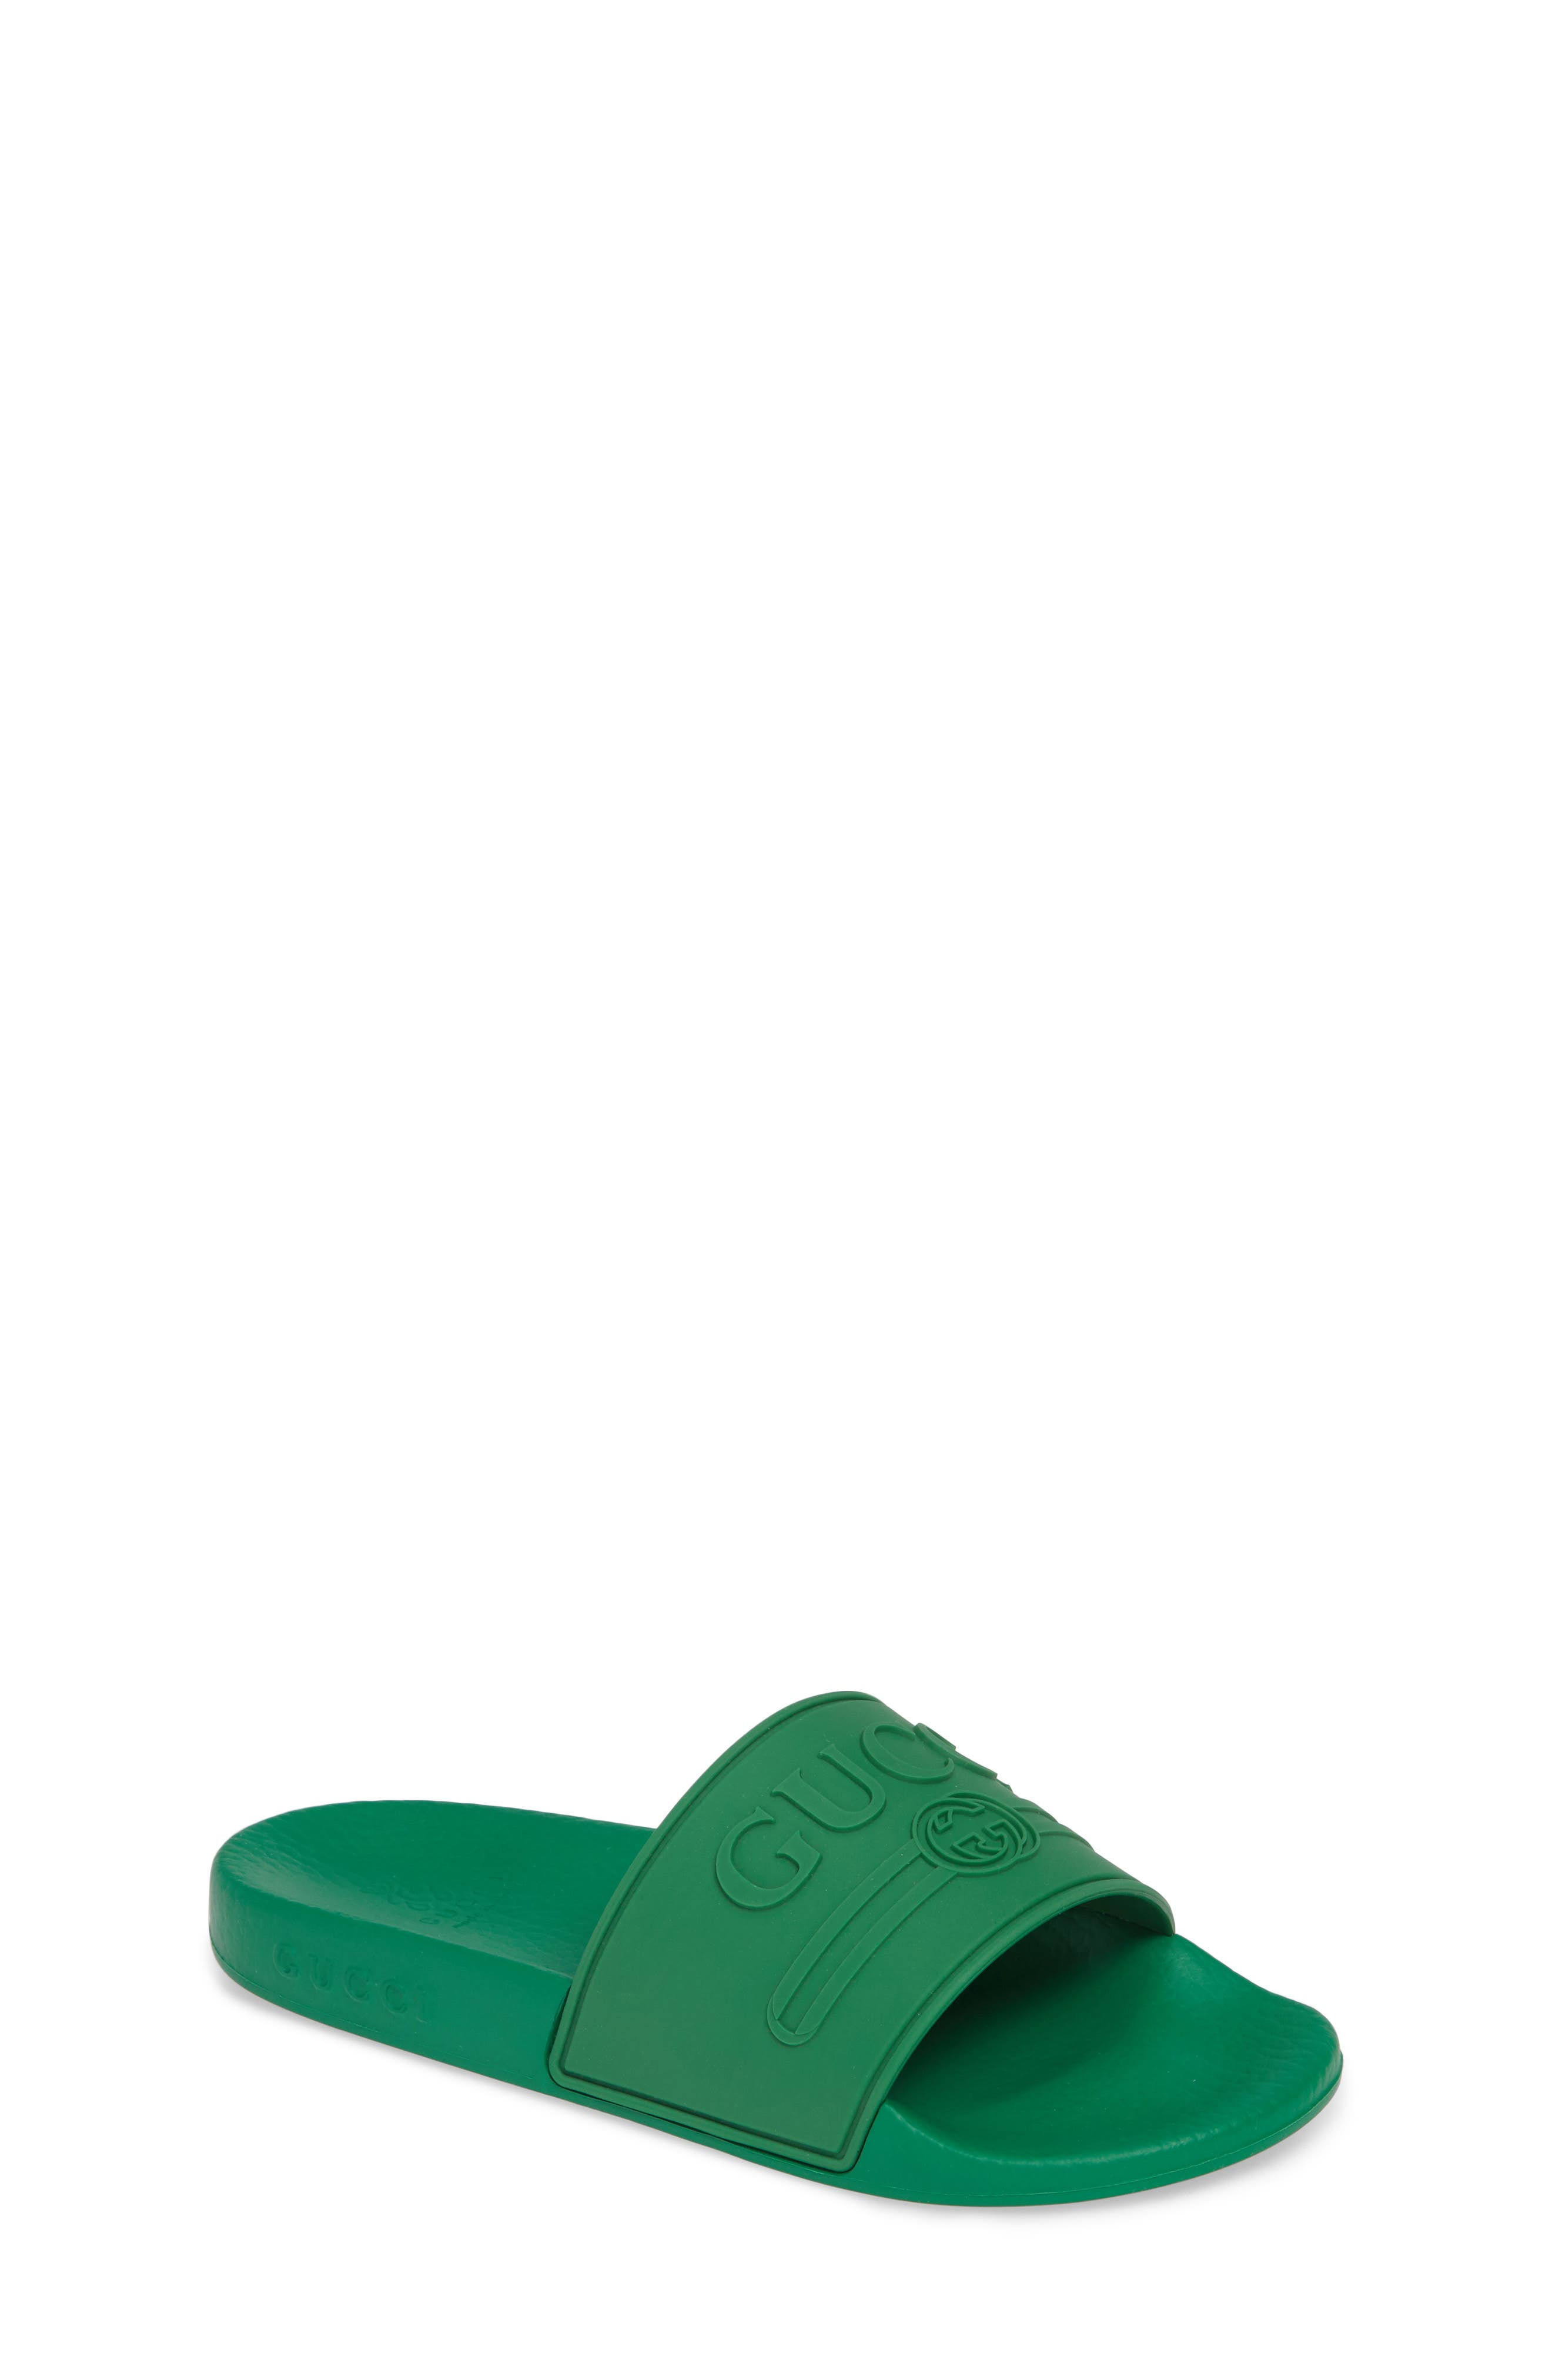 GUCCI, Pursuit Logo Slide Sandal, Main thumbnail 1, color, SHAMROCK